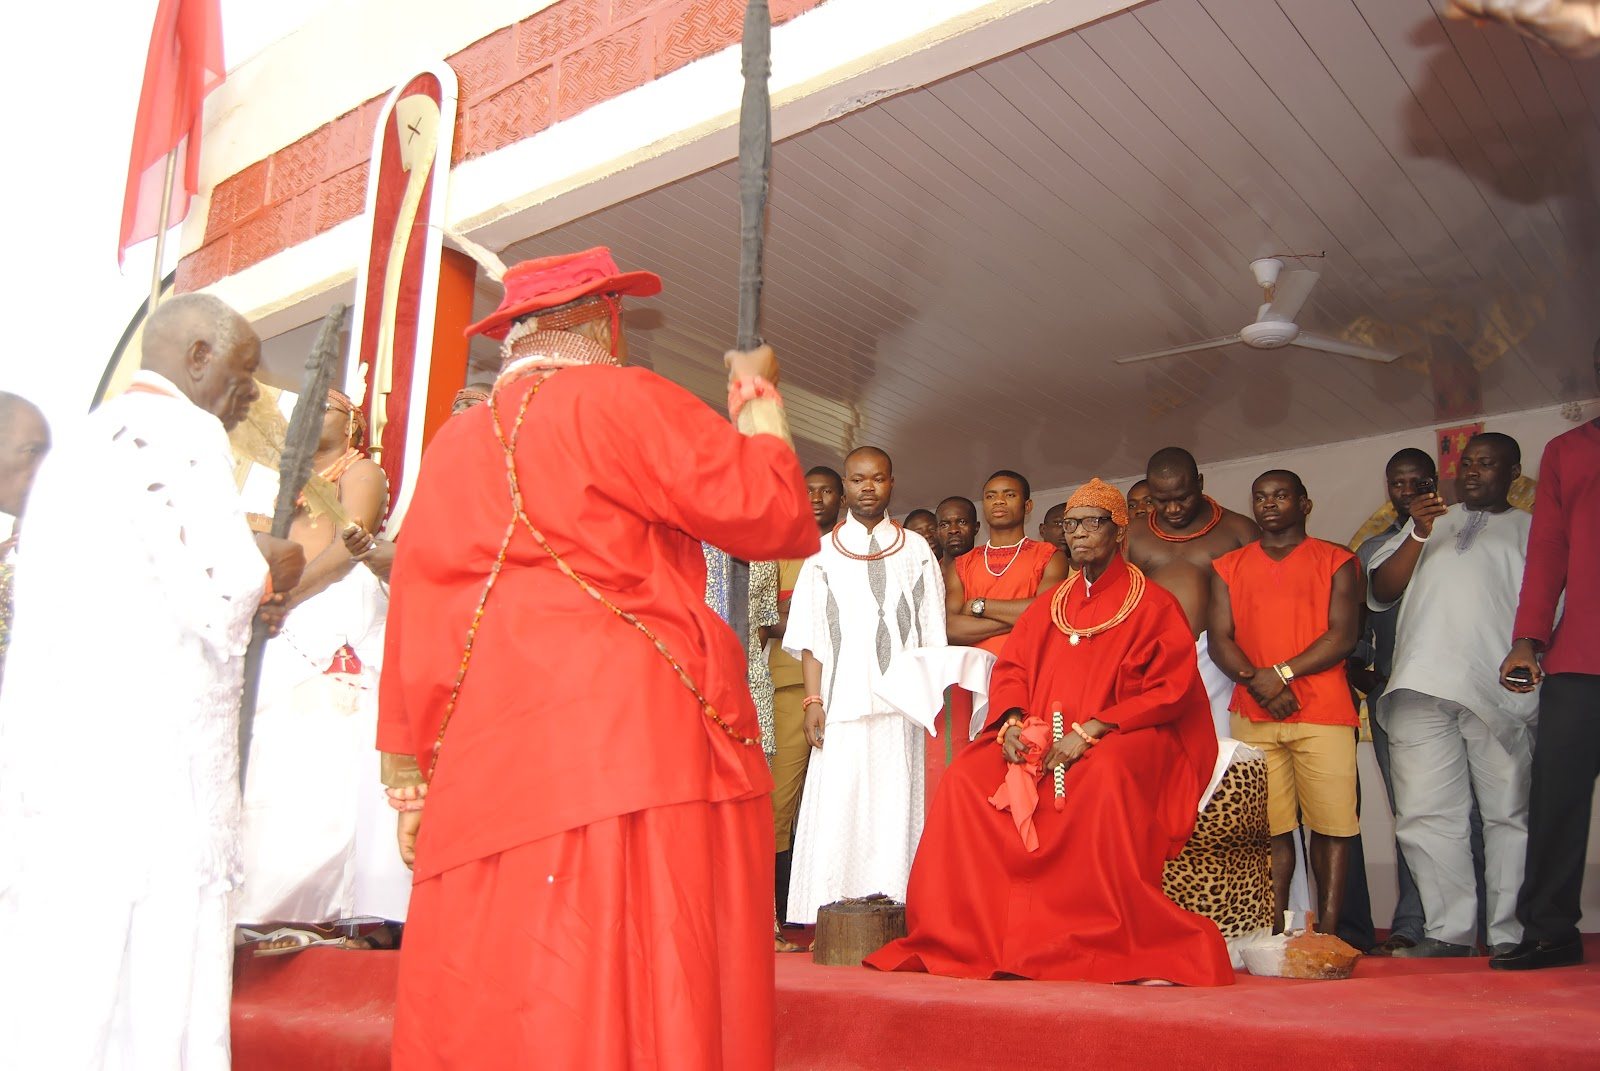 Paying Homage to the Oba of Benin during the 2011 Igue Festival